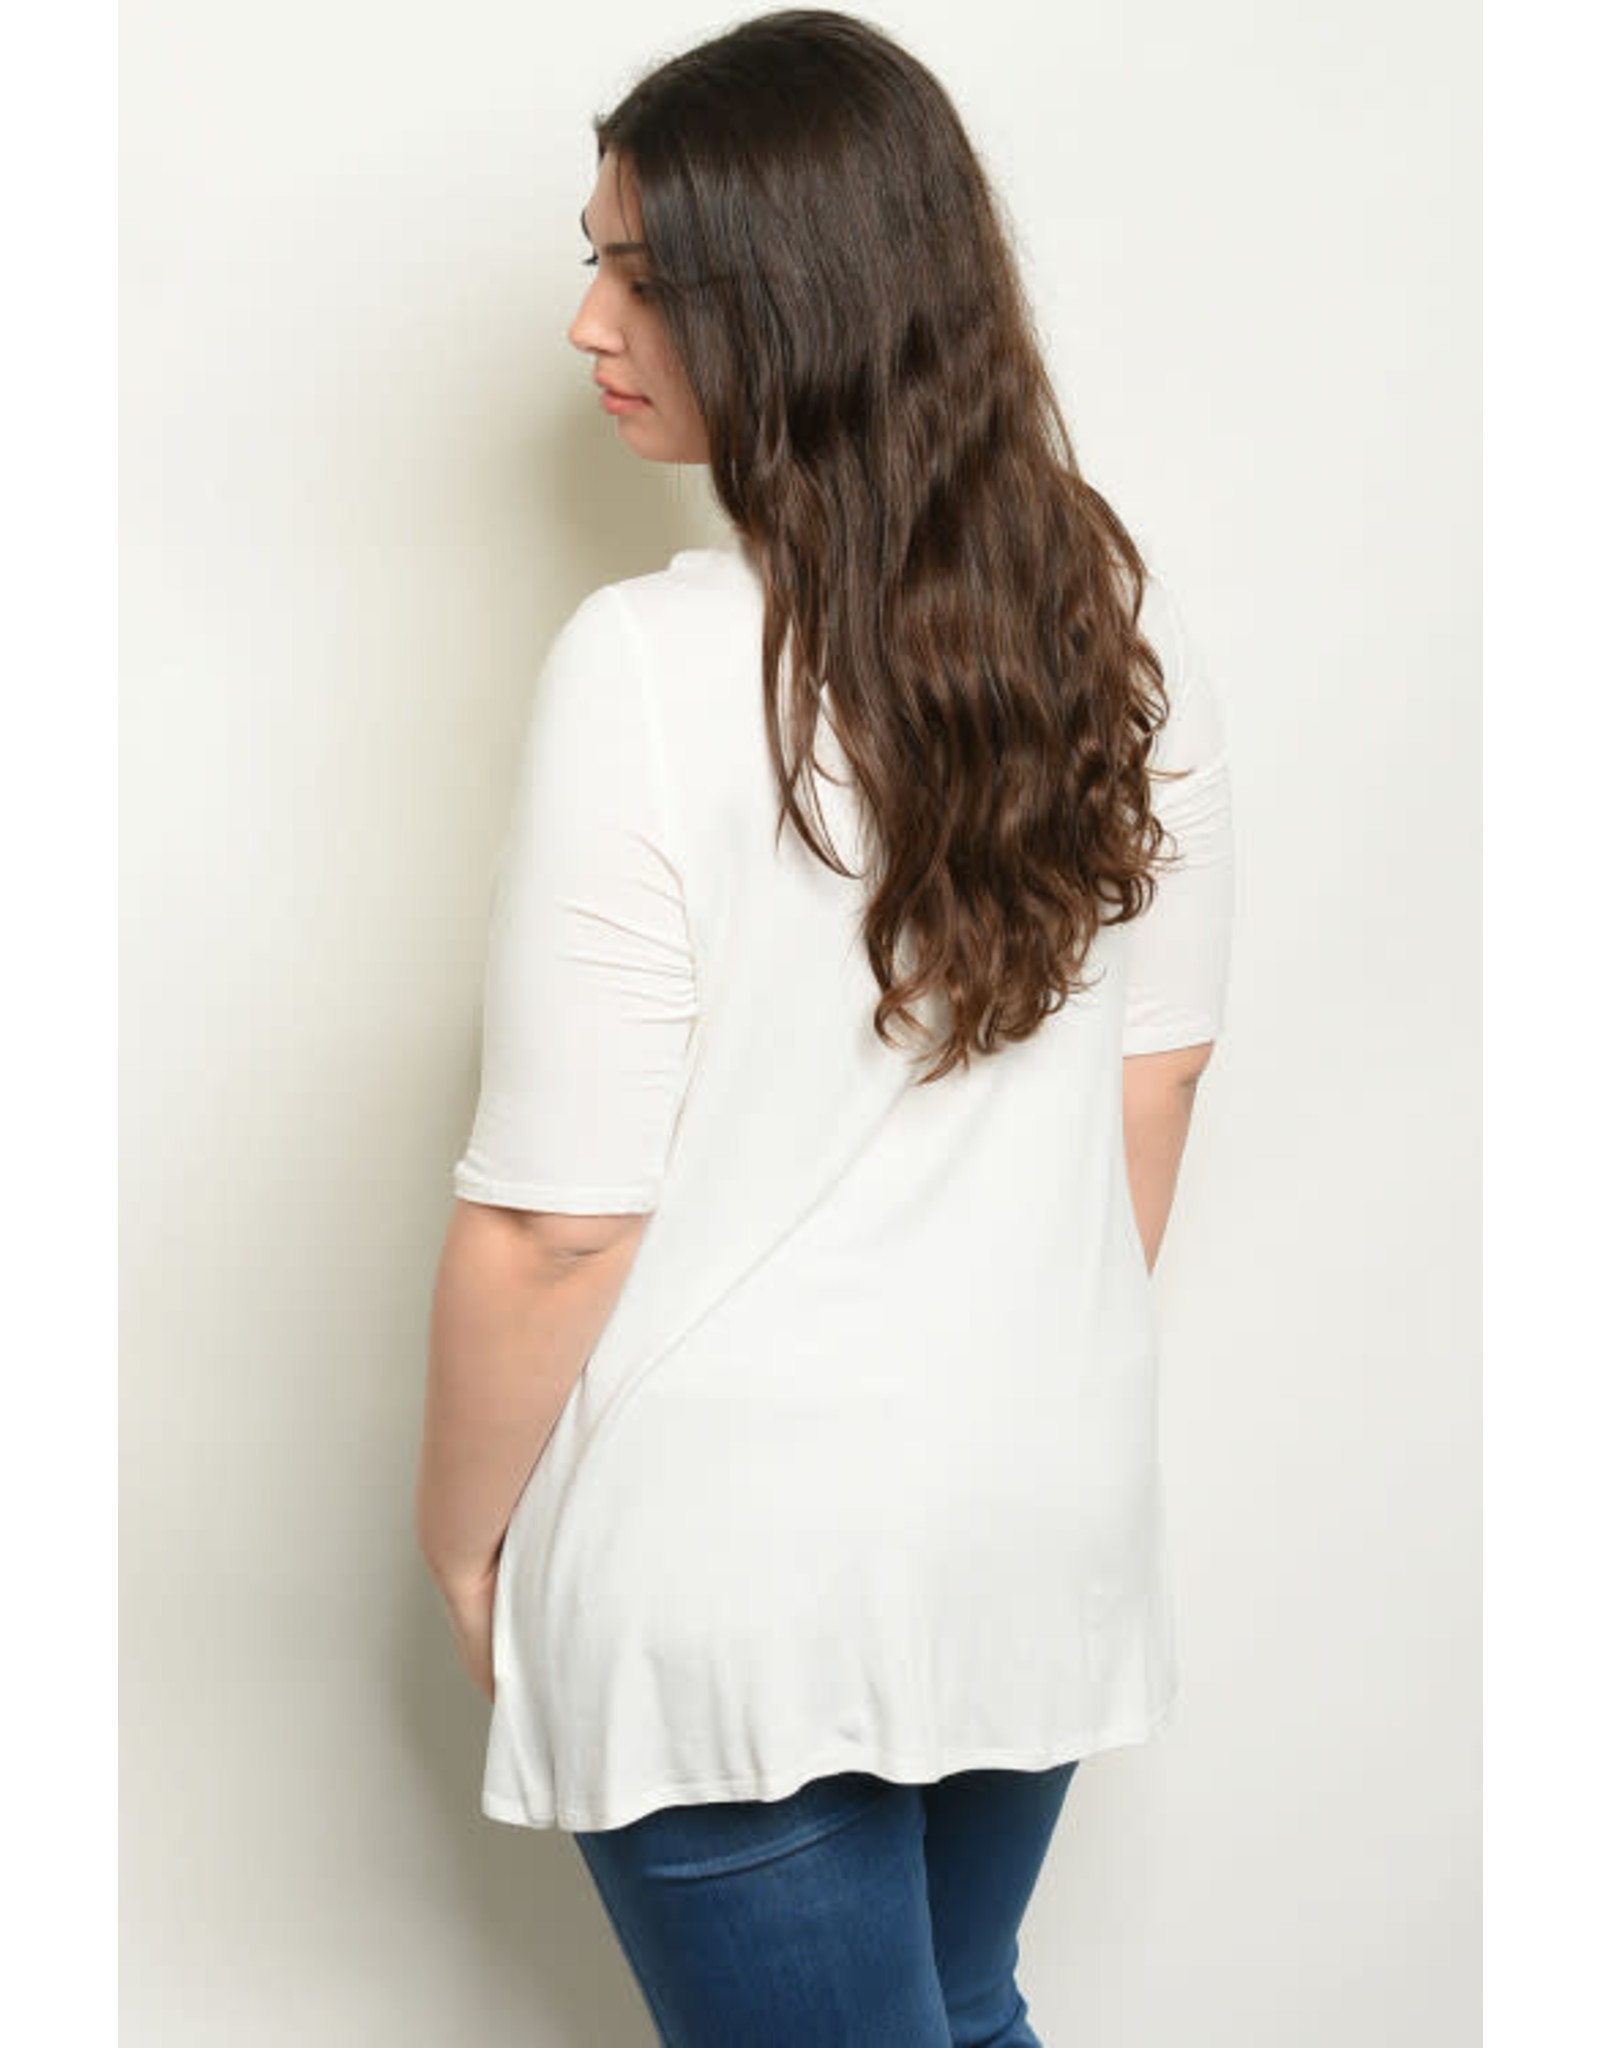 Quarter Sleeve Off-White Tunic Top